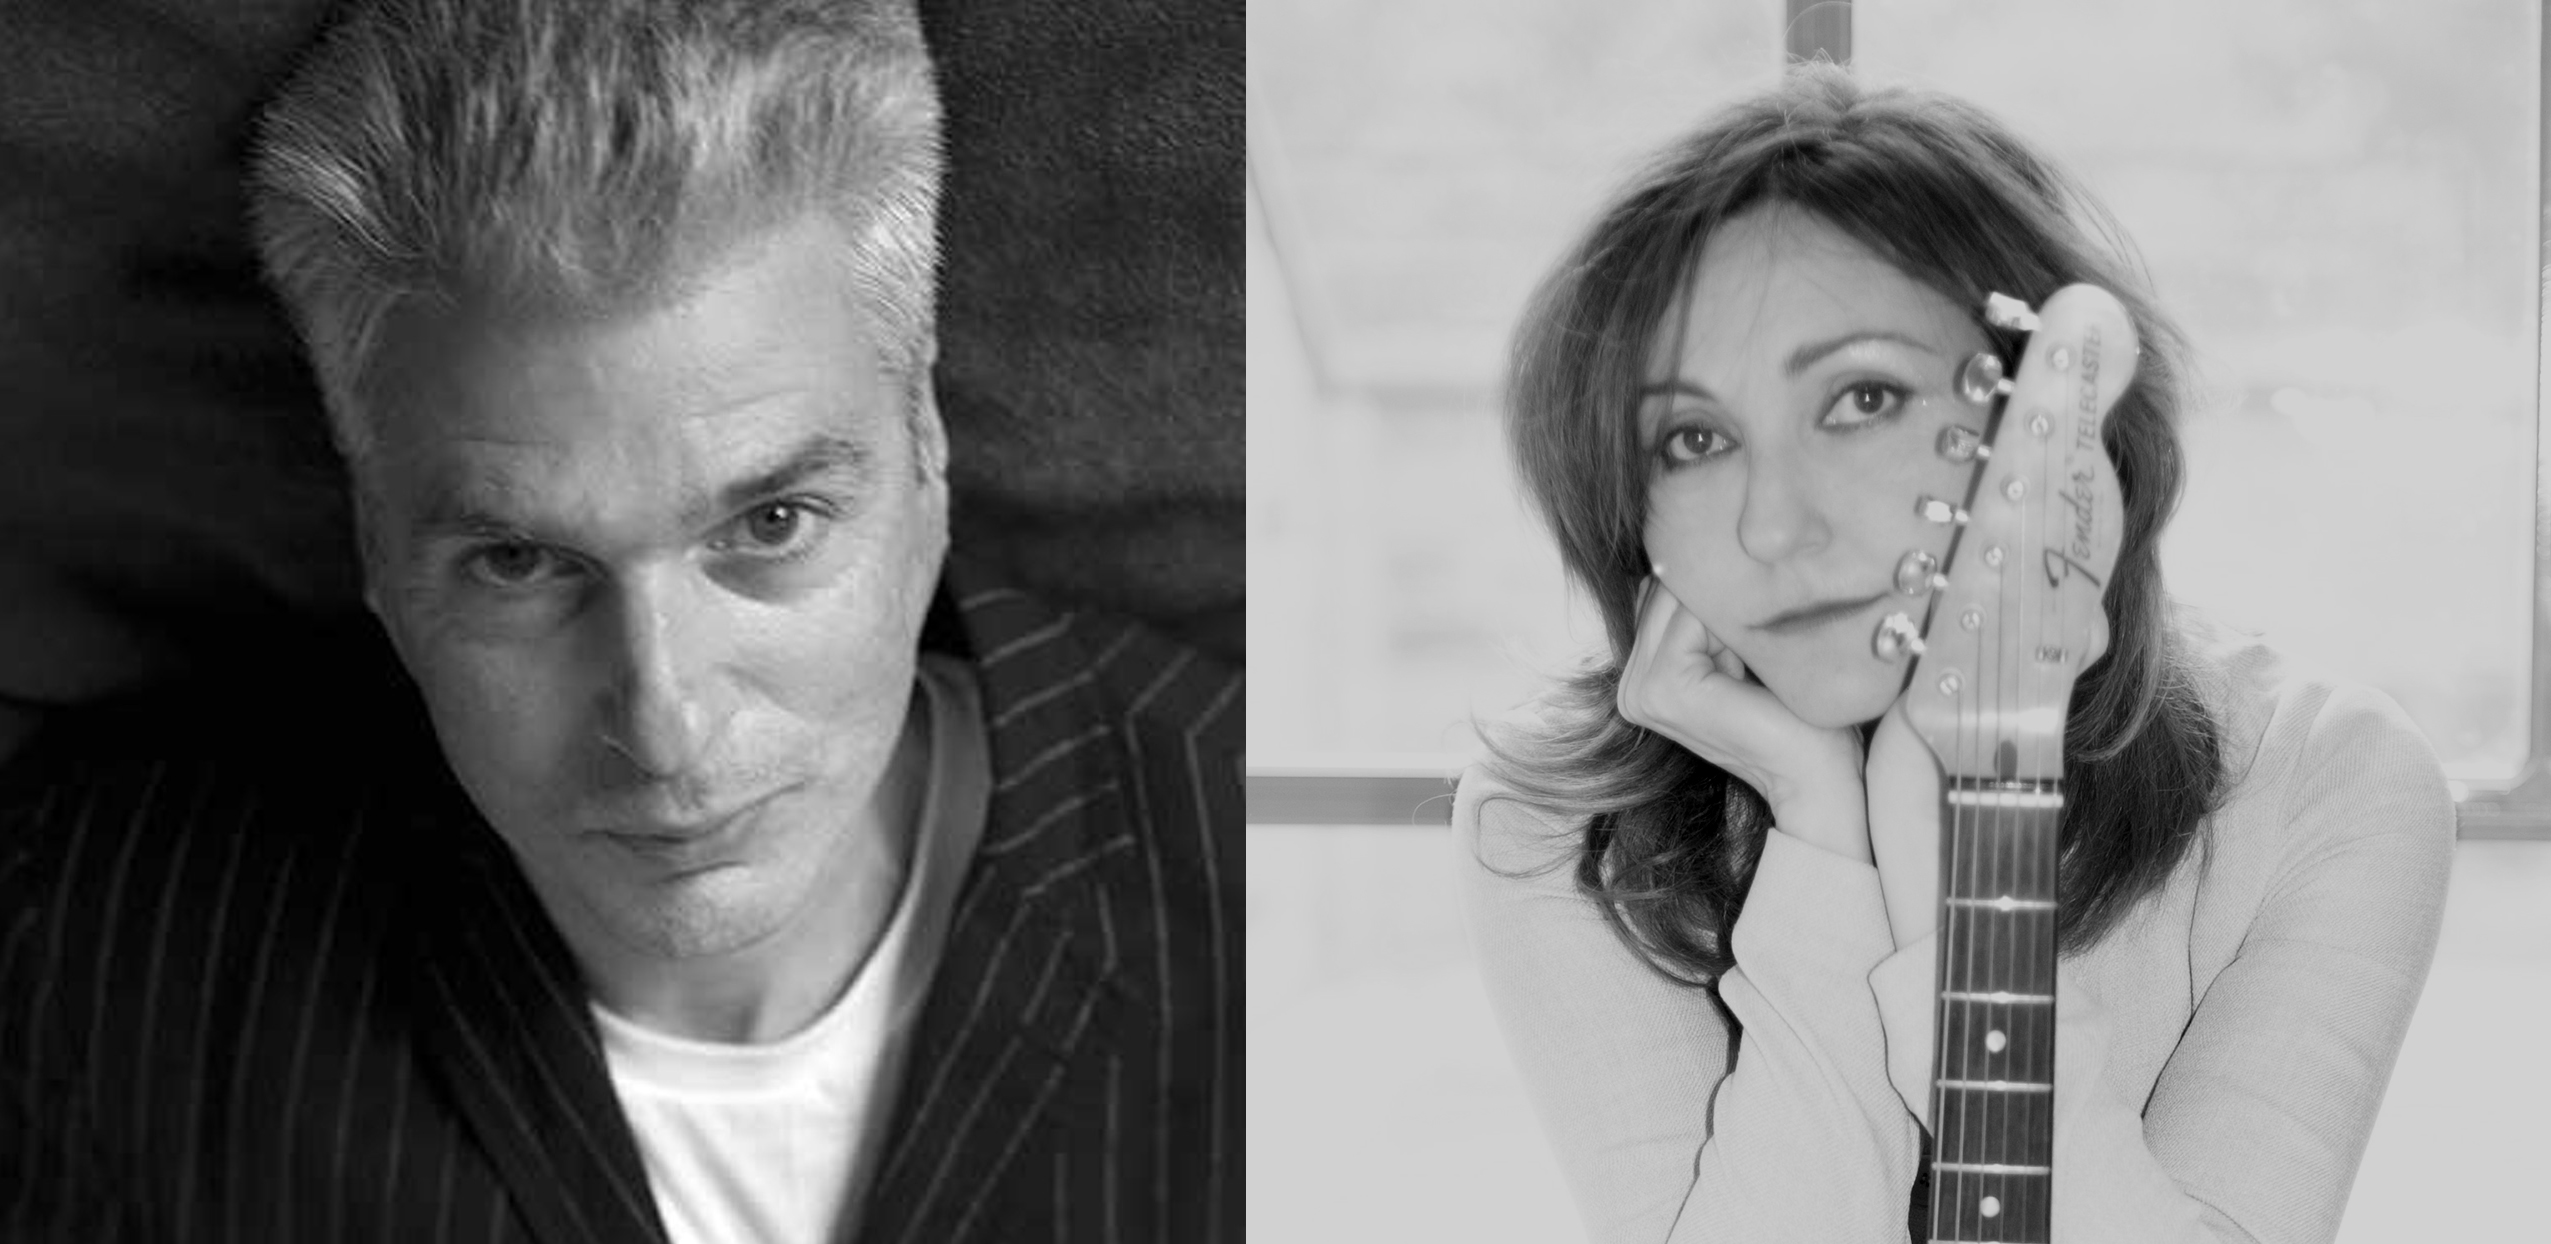 Jon Savage and Viv Albertine